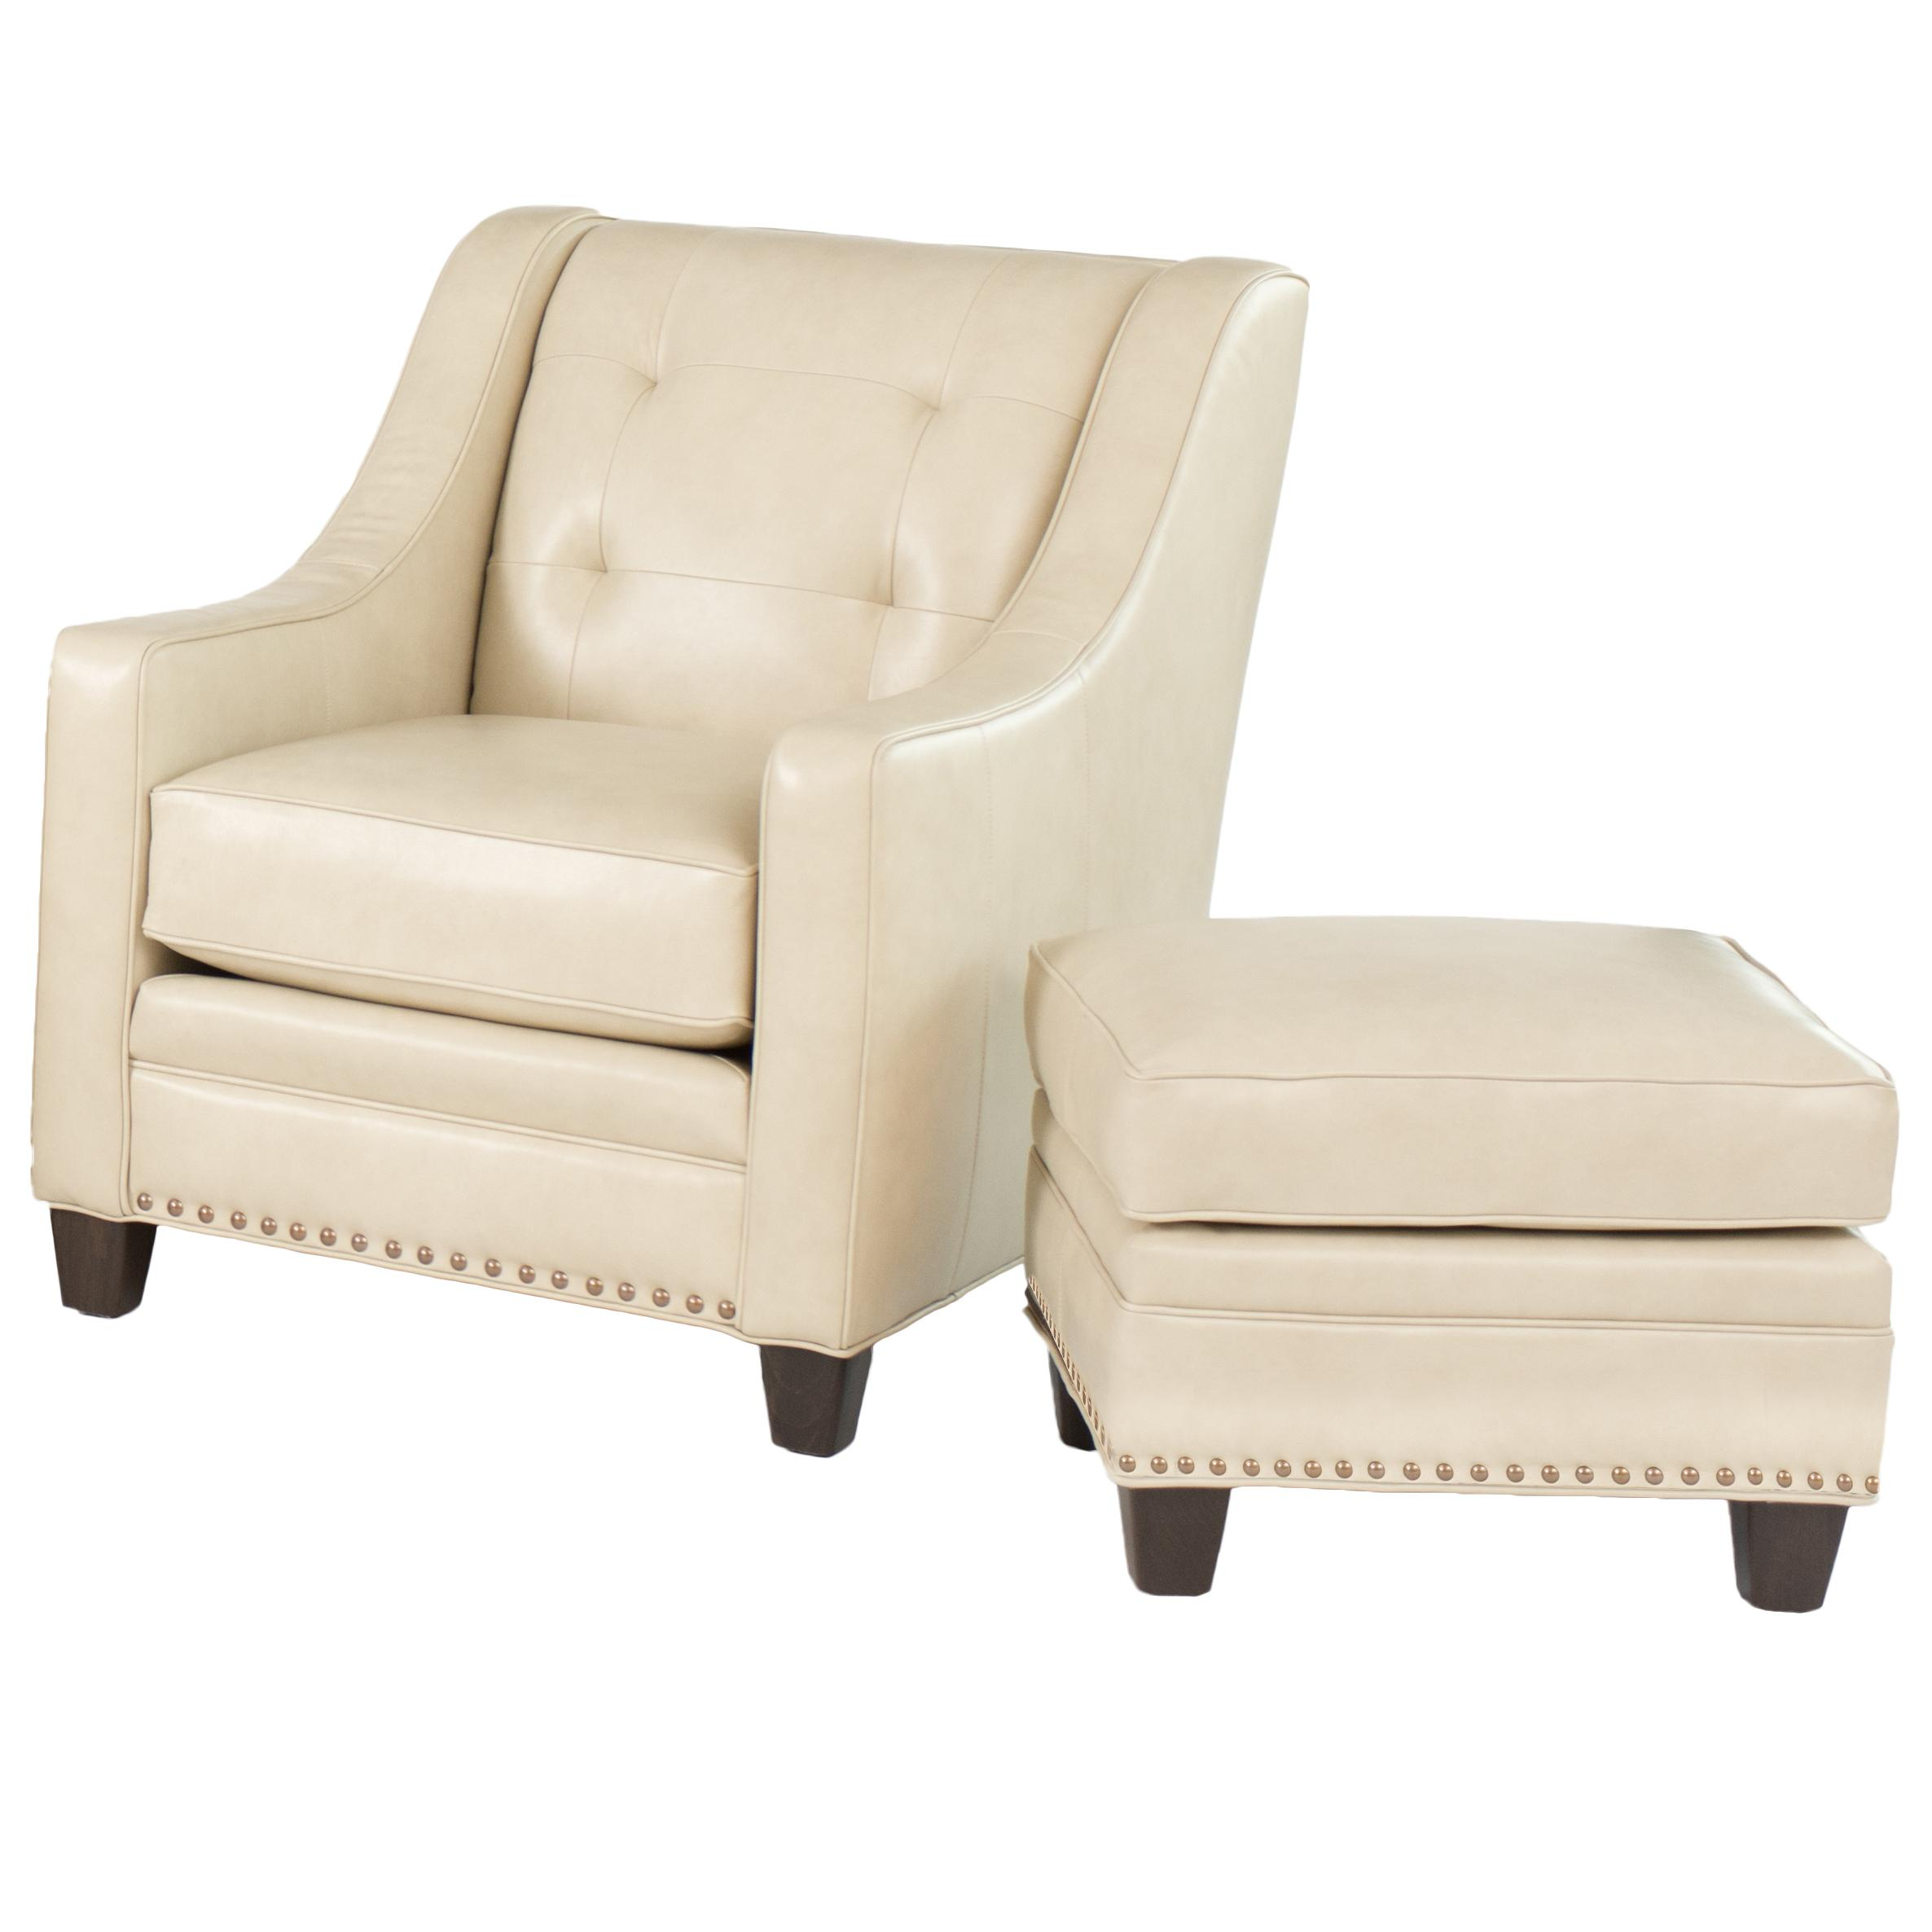 203L Transitional Chair with Ottoman by Smith Brothers at Story & Lee Furniture